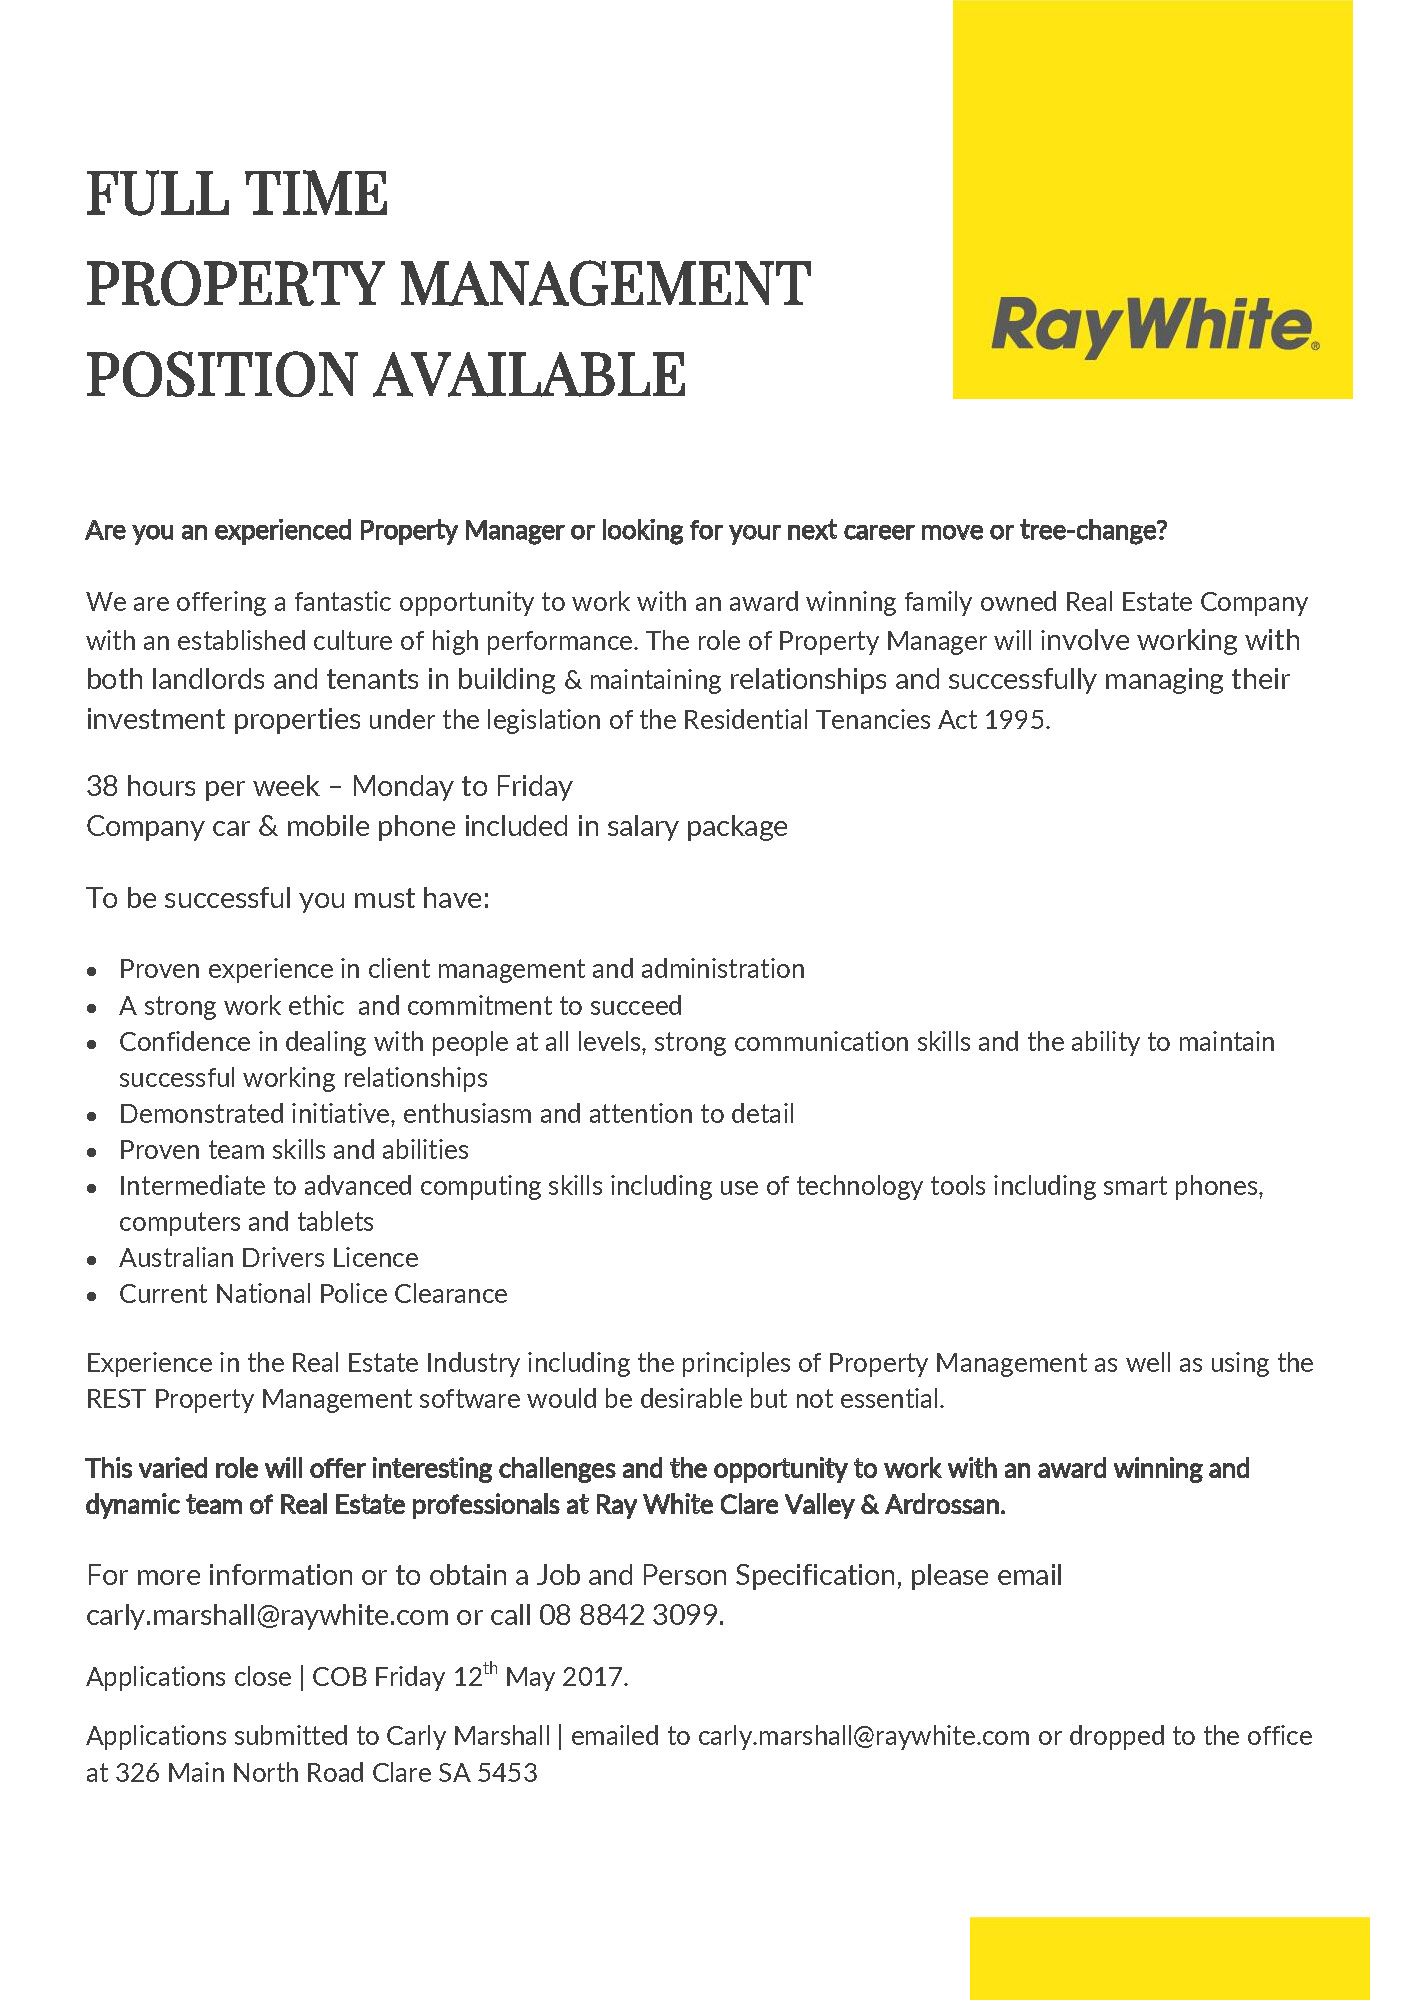 We're Hiring - News - Ray White Clare Valley